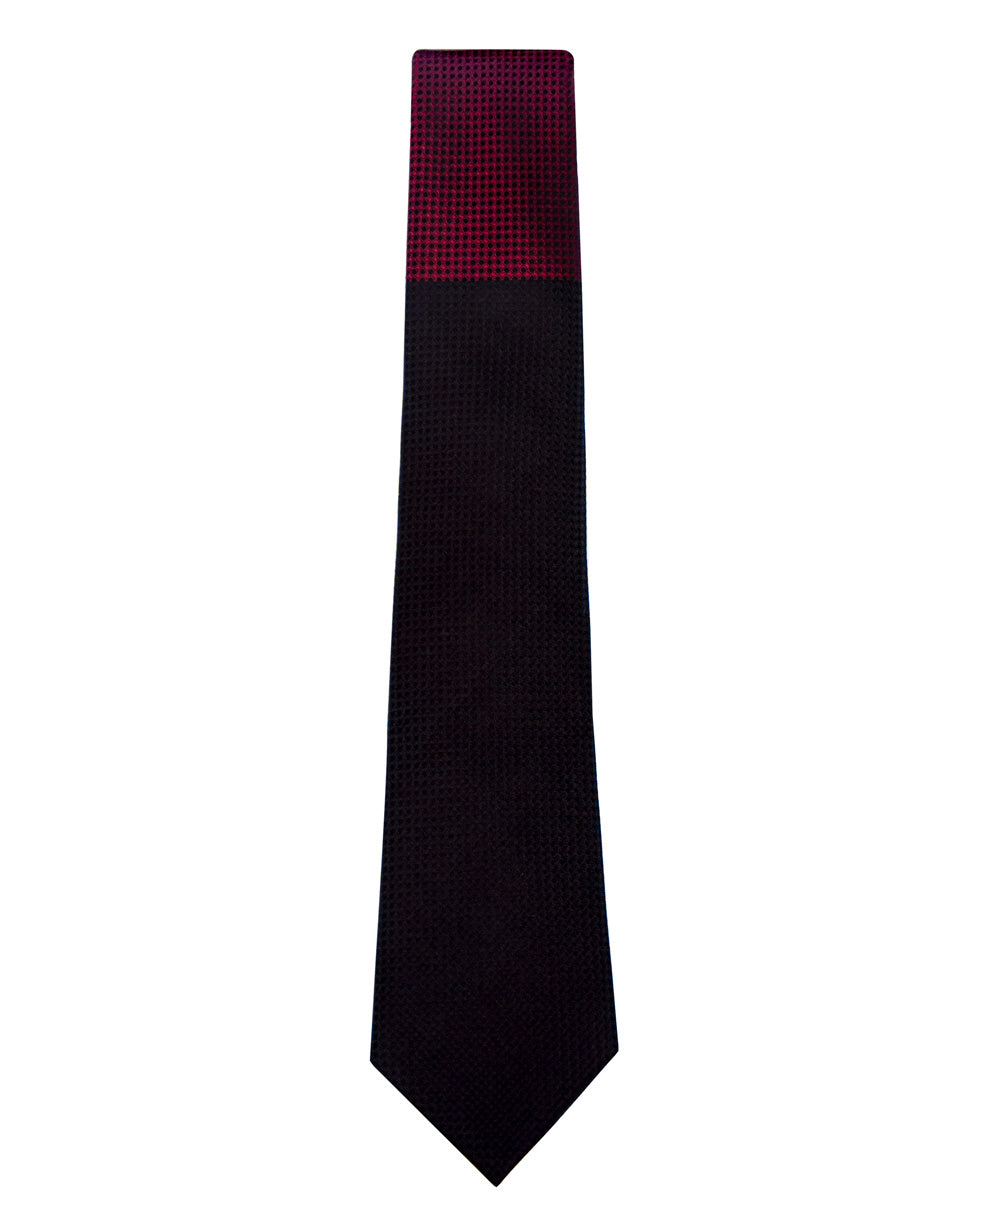 Black and Red Block Waffle Weave Silk Tie Long